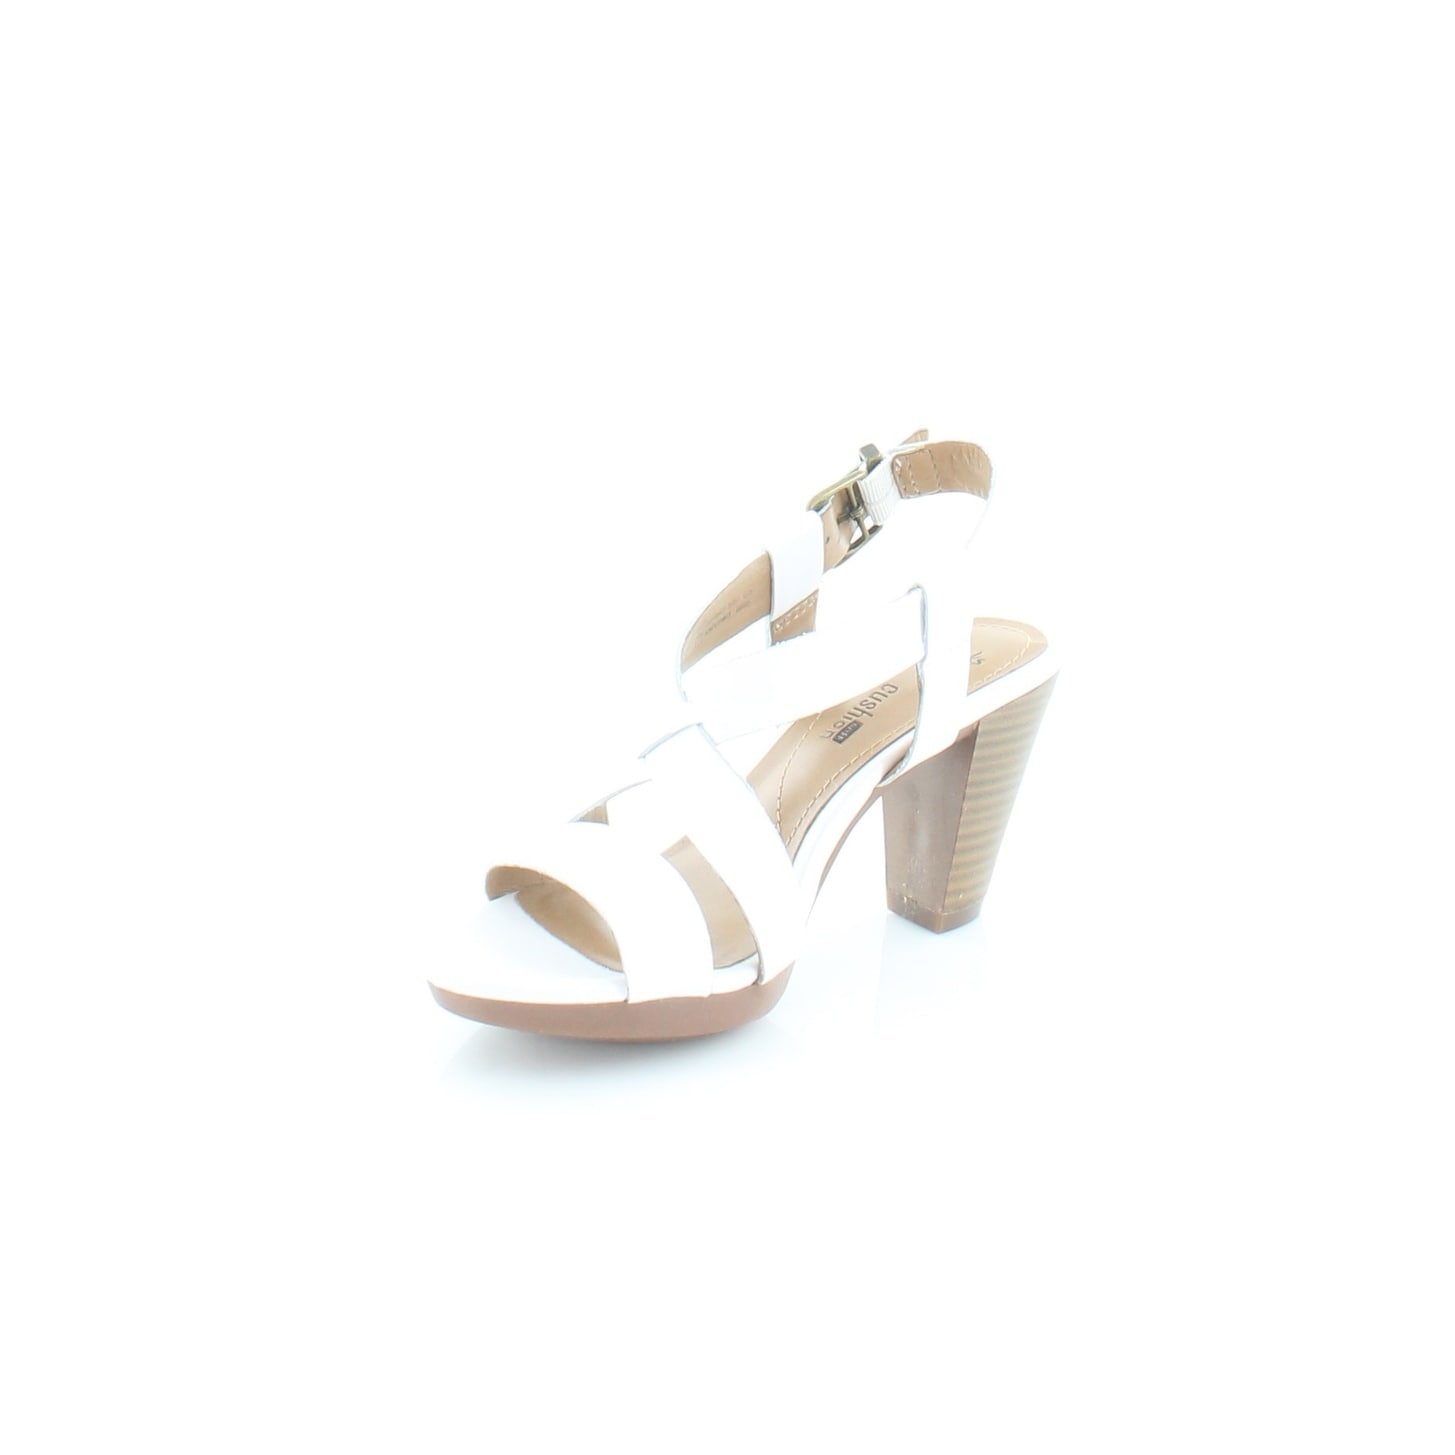 9c5f222c568 Shop Clarks Jaelyn Fog Women s Sandals White - 5 - Ships To Canada -  Overstock - 23550563